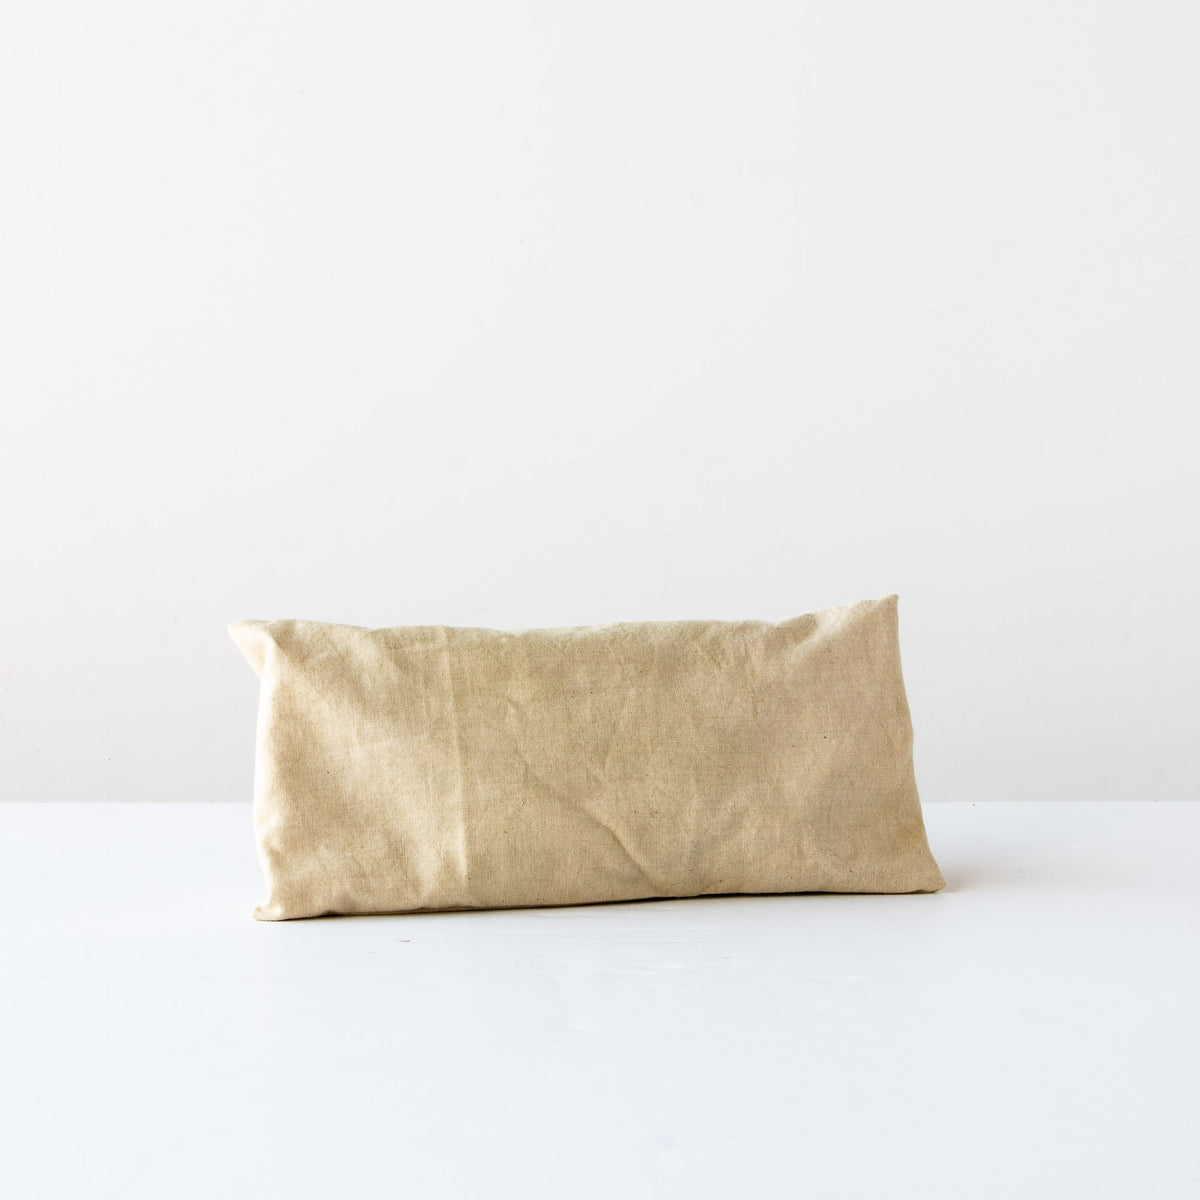 Sage Green - Organic Cotton Lavender Aromatherapy Eye Pillow - Sold by Chic & Basta